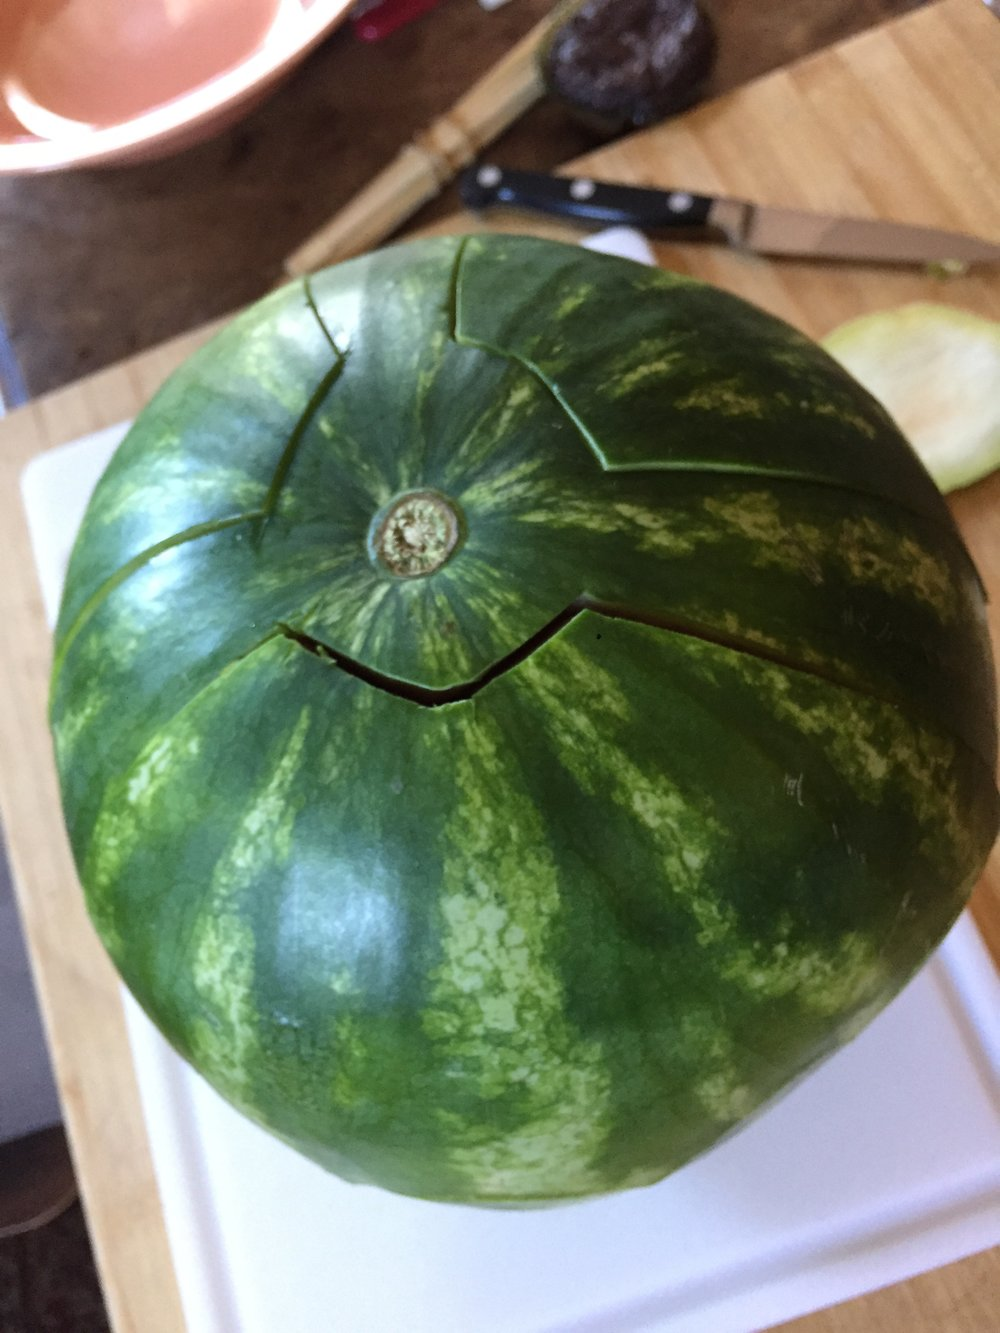 1. - After taking a thin slice off the base to stabilize, carve the design with a paring knife. Watermelons are easier to cut than pumpkins!